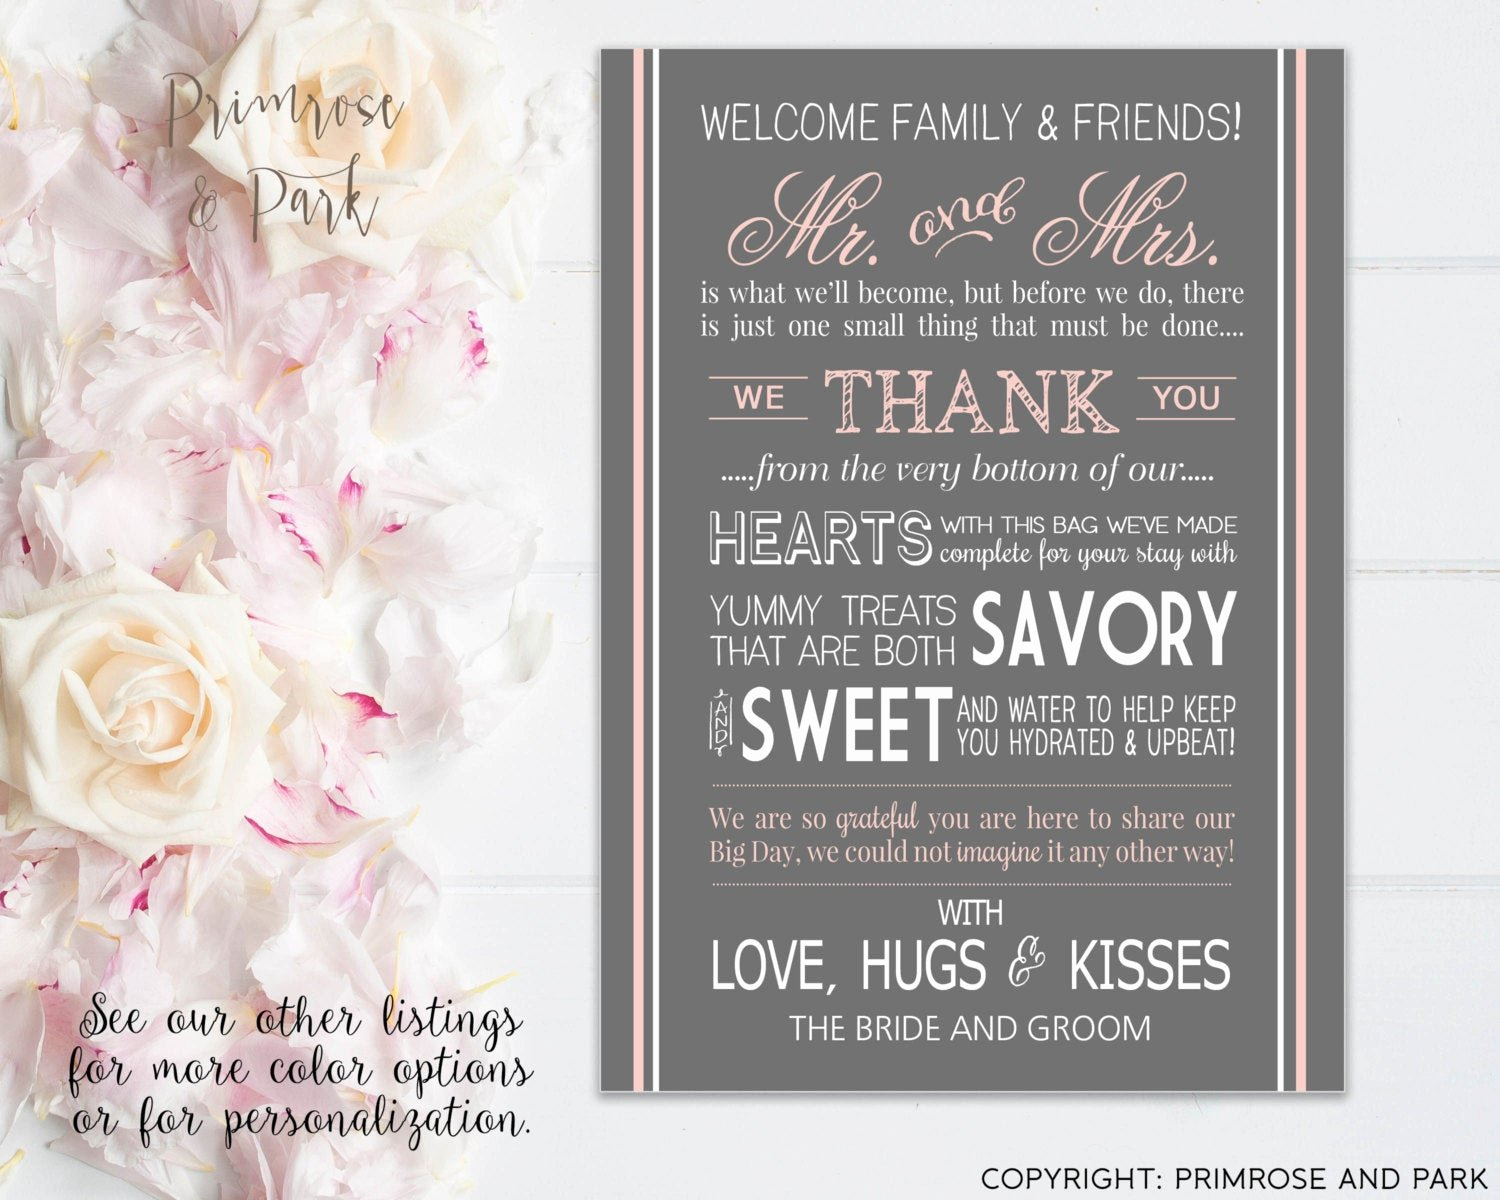 Wedding Hotel Welcome Letter Template Beautiful Wedding Wel E Letter for Hotel Wel E Bags Wel E Note